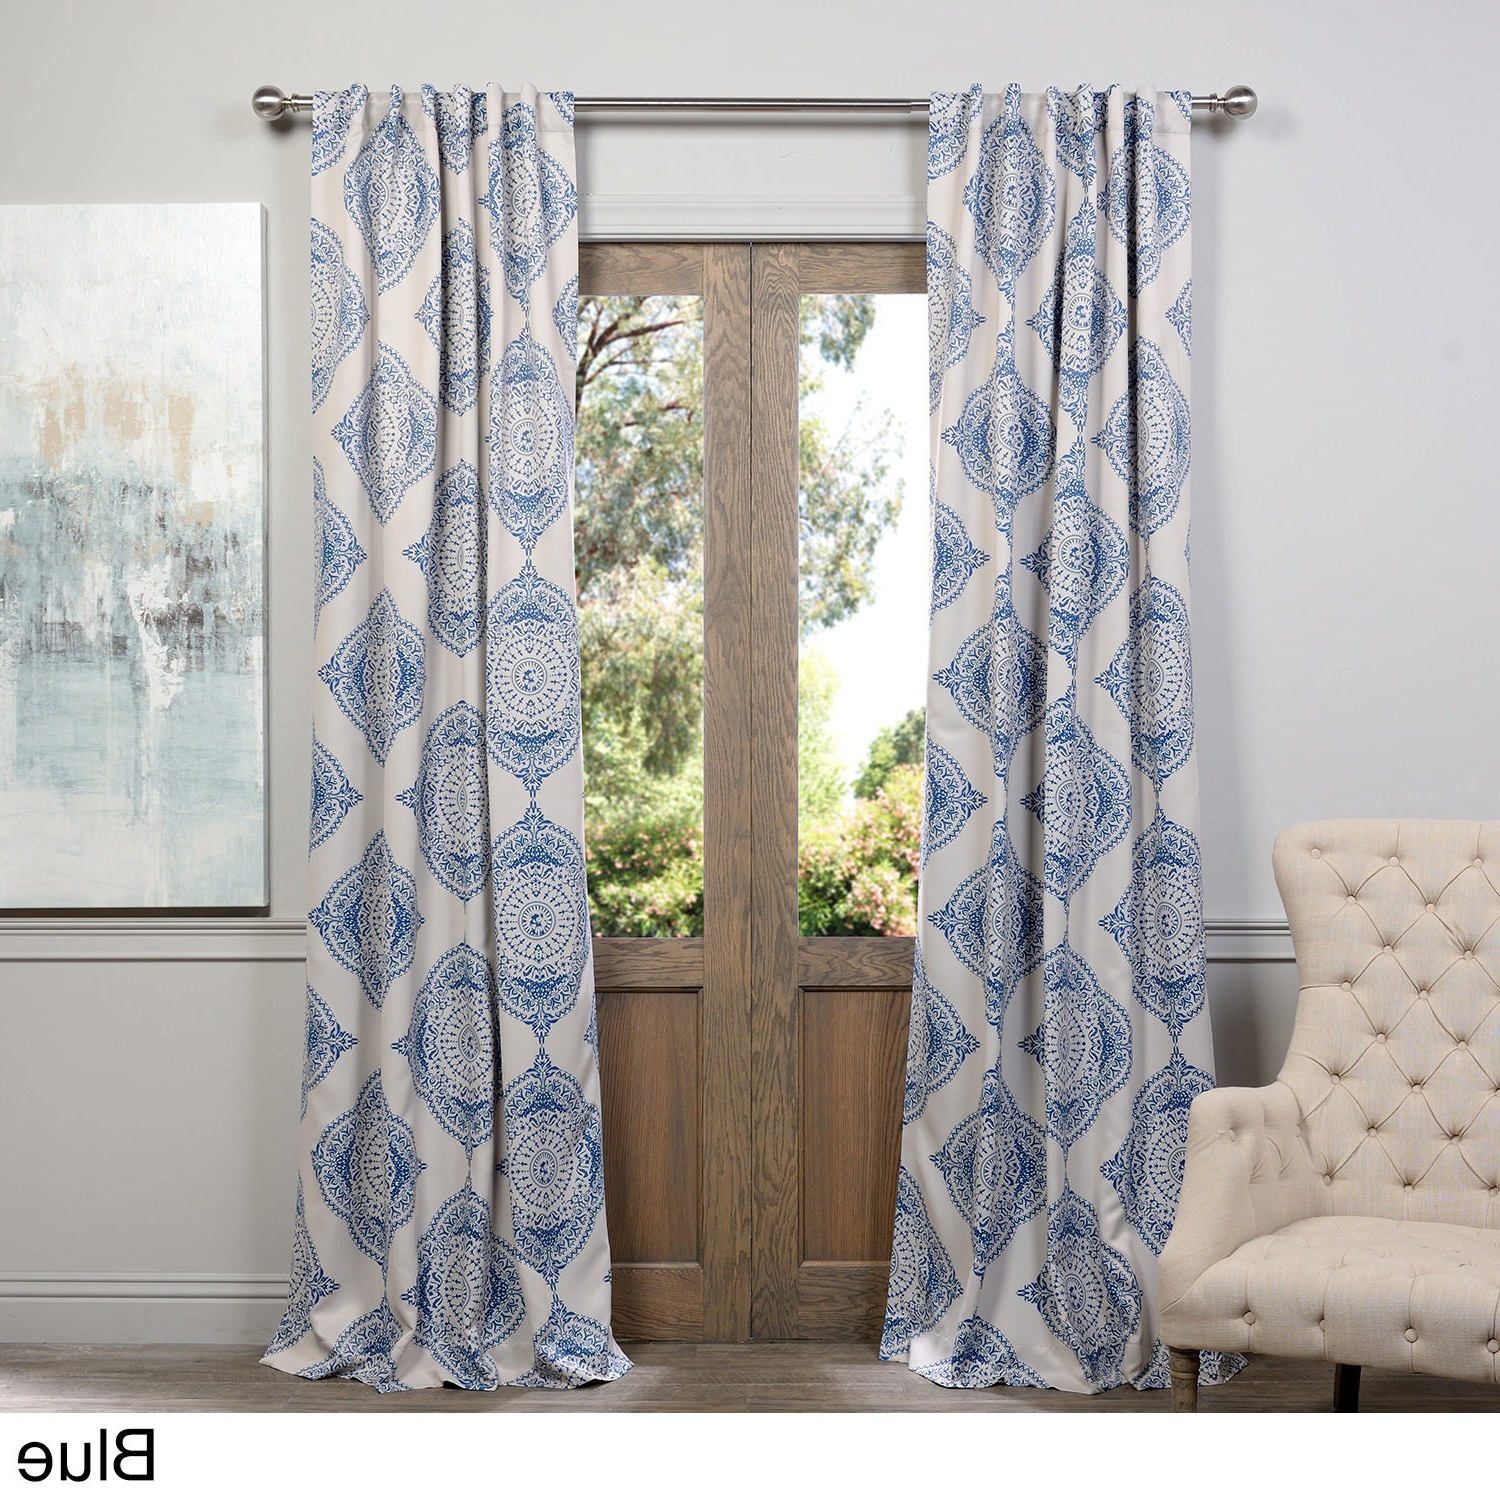 Details About Moroccan Style Thermal Insulated Blackout Curtain Panel Pair For Best And Newest Moroccan Style Thermal Insulated Blackout Curtain Panel Pairs (View 10 of 20)